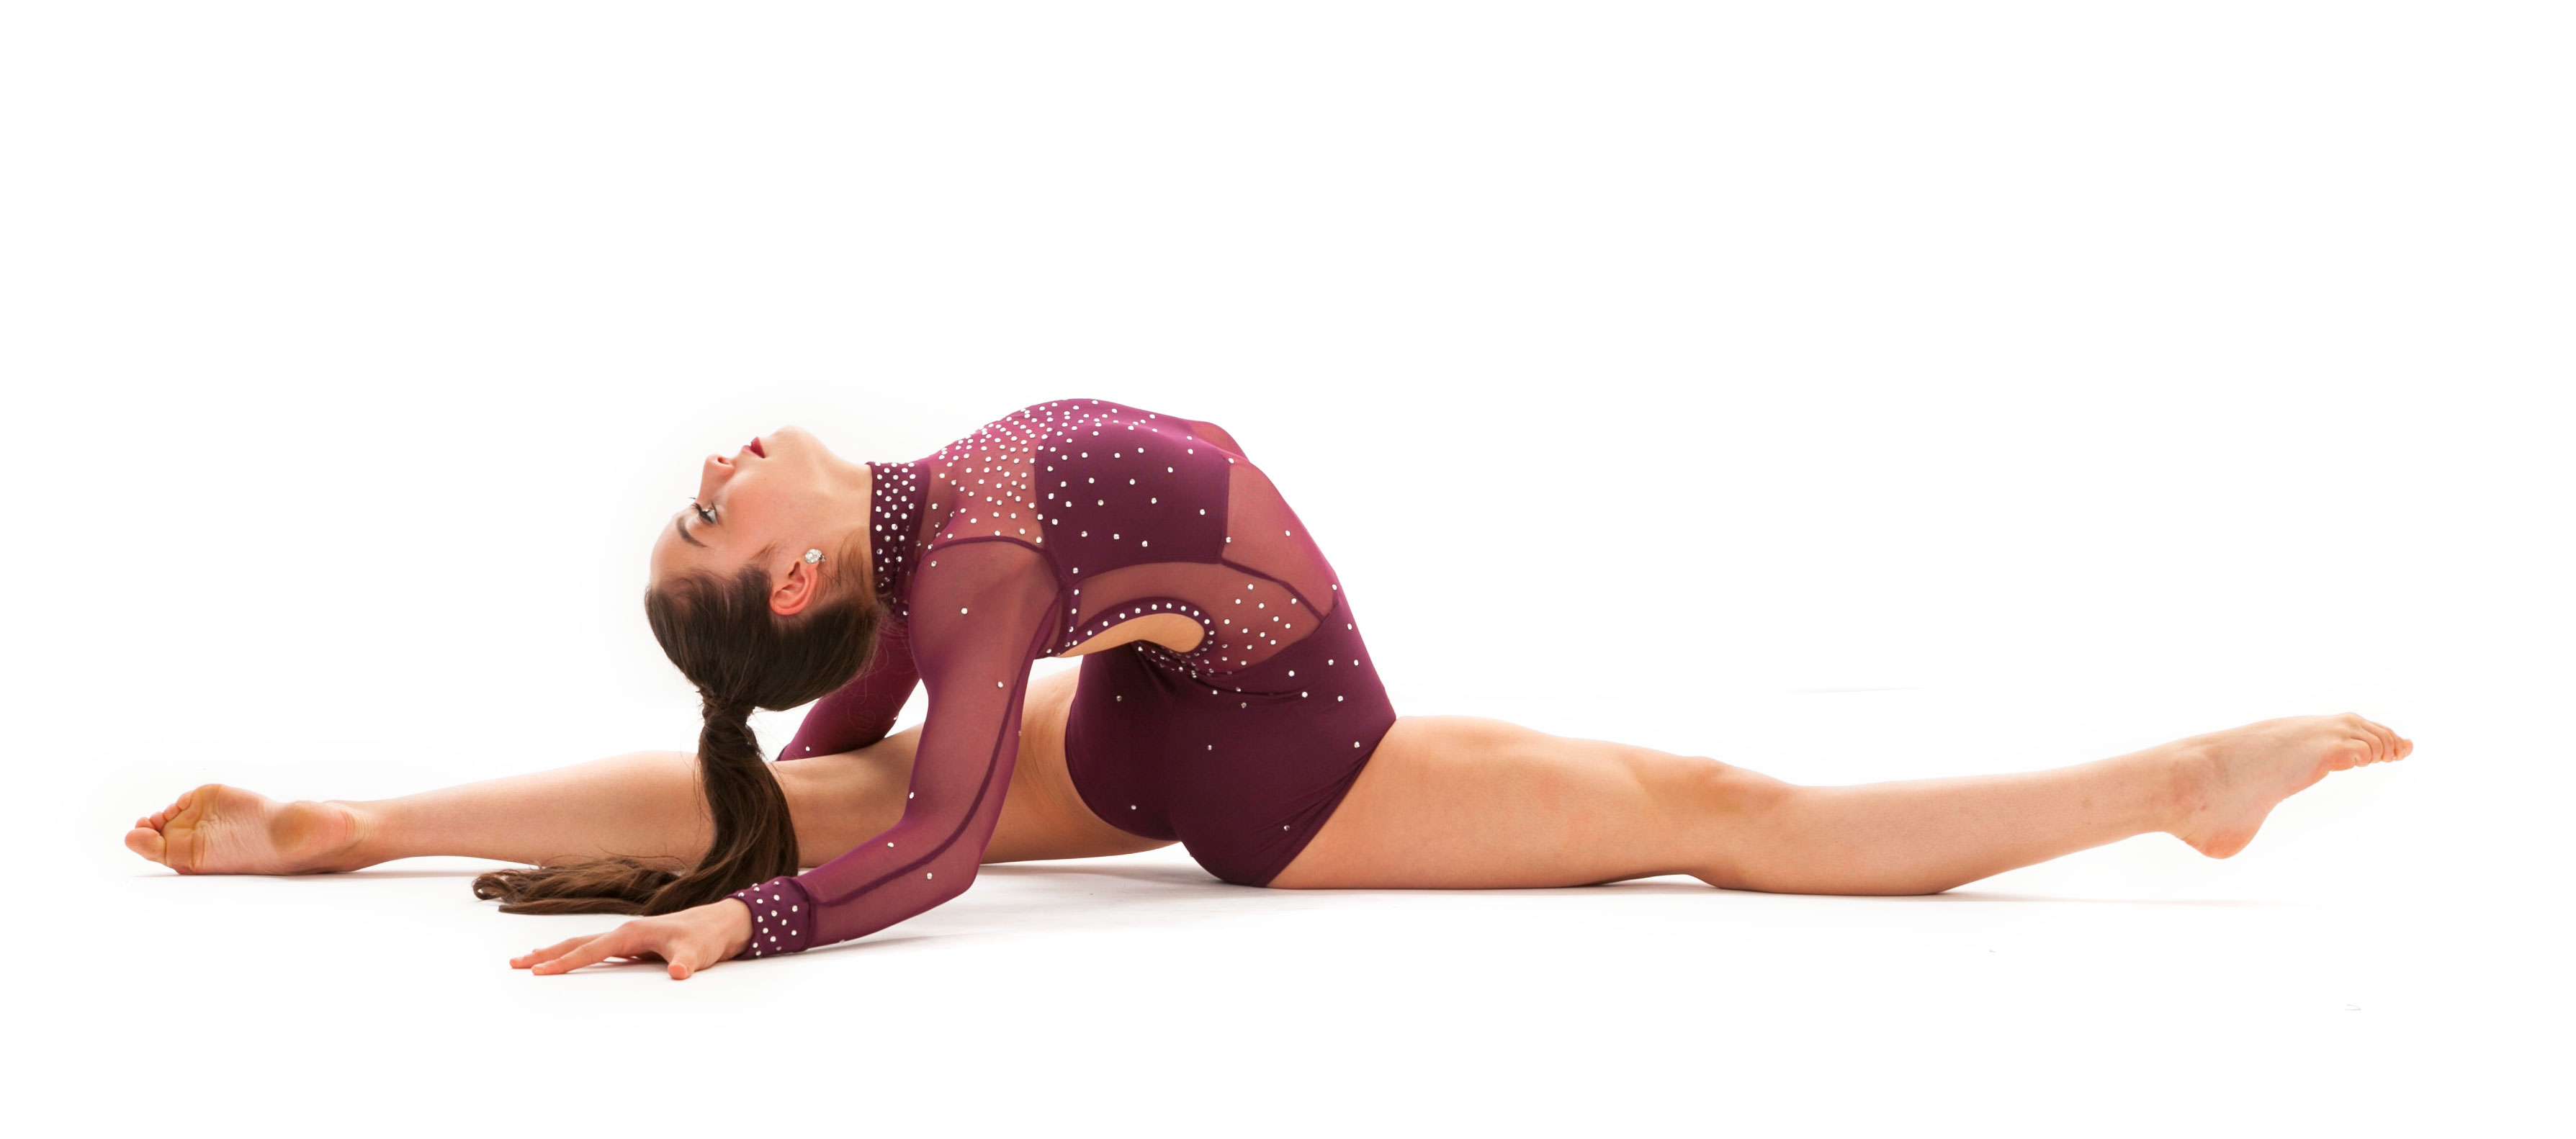 Dancer hip flexibility